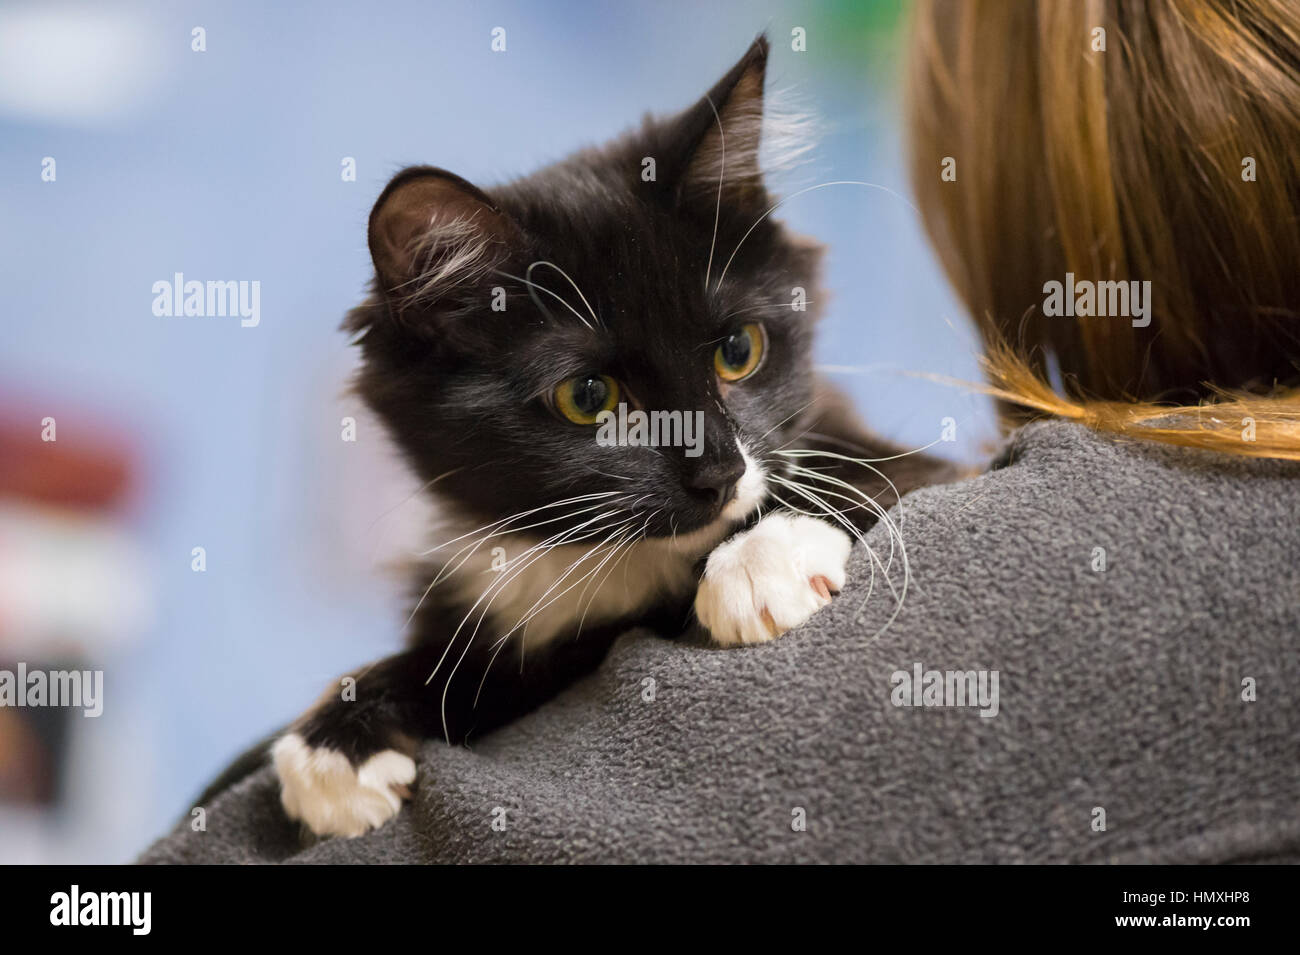 Wantagh, New York, USA. February 5, 2017. SALSA, a five month old black and white domestic female cat is looking Stock Photo